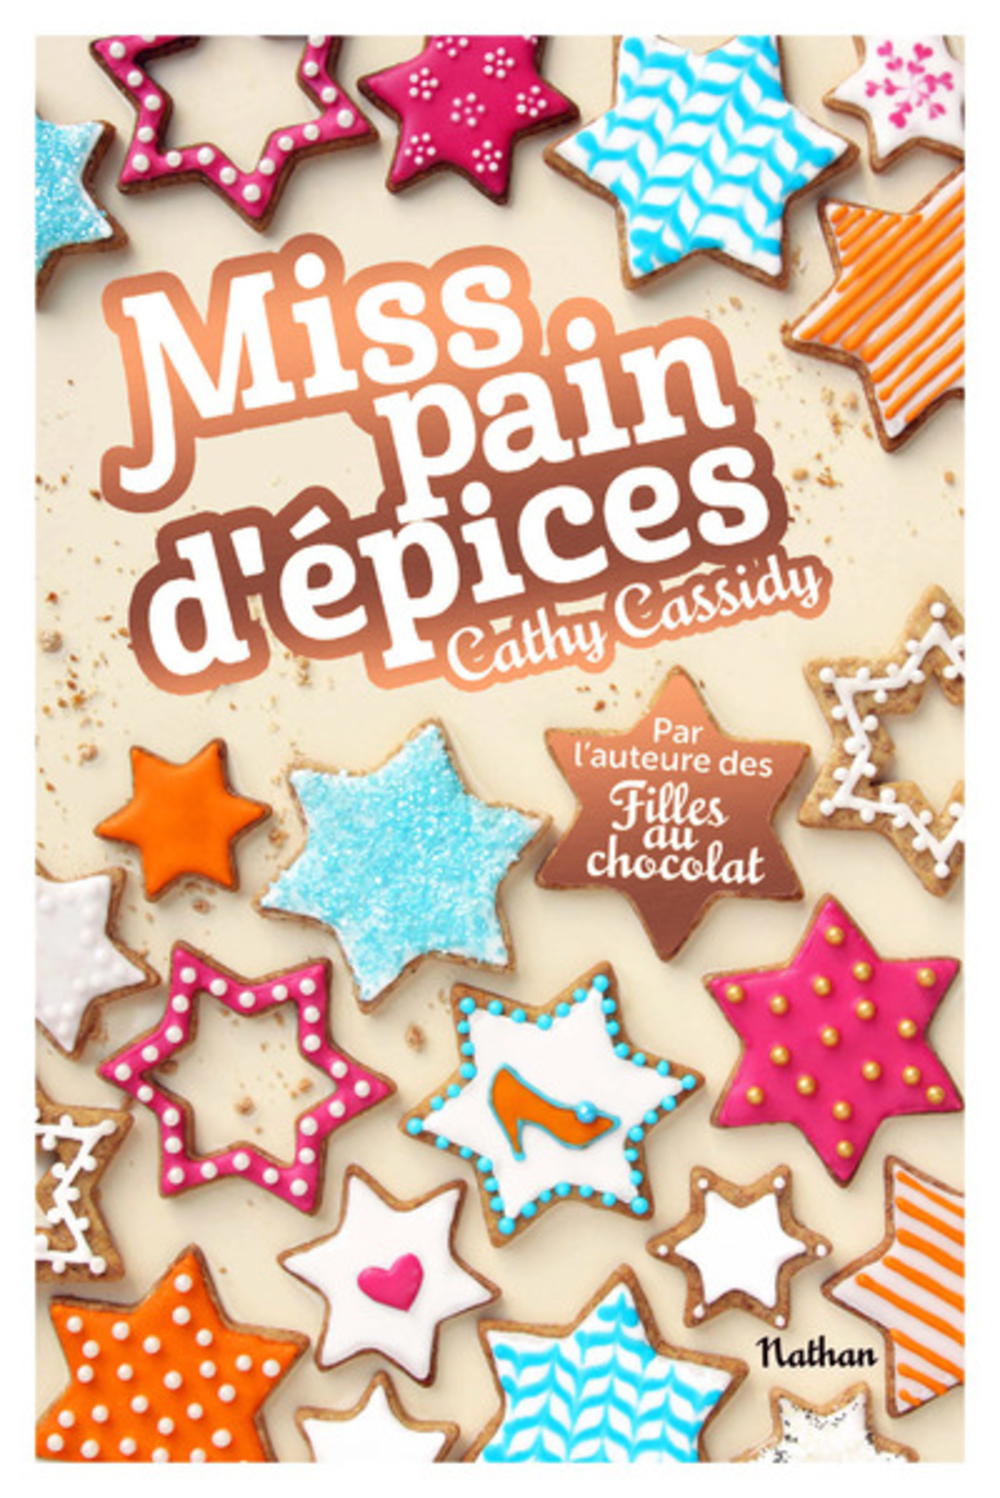 Miss pain d'épices | Cassidy, Cathy